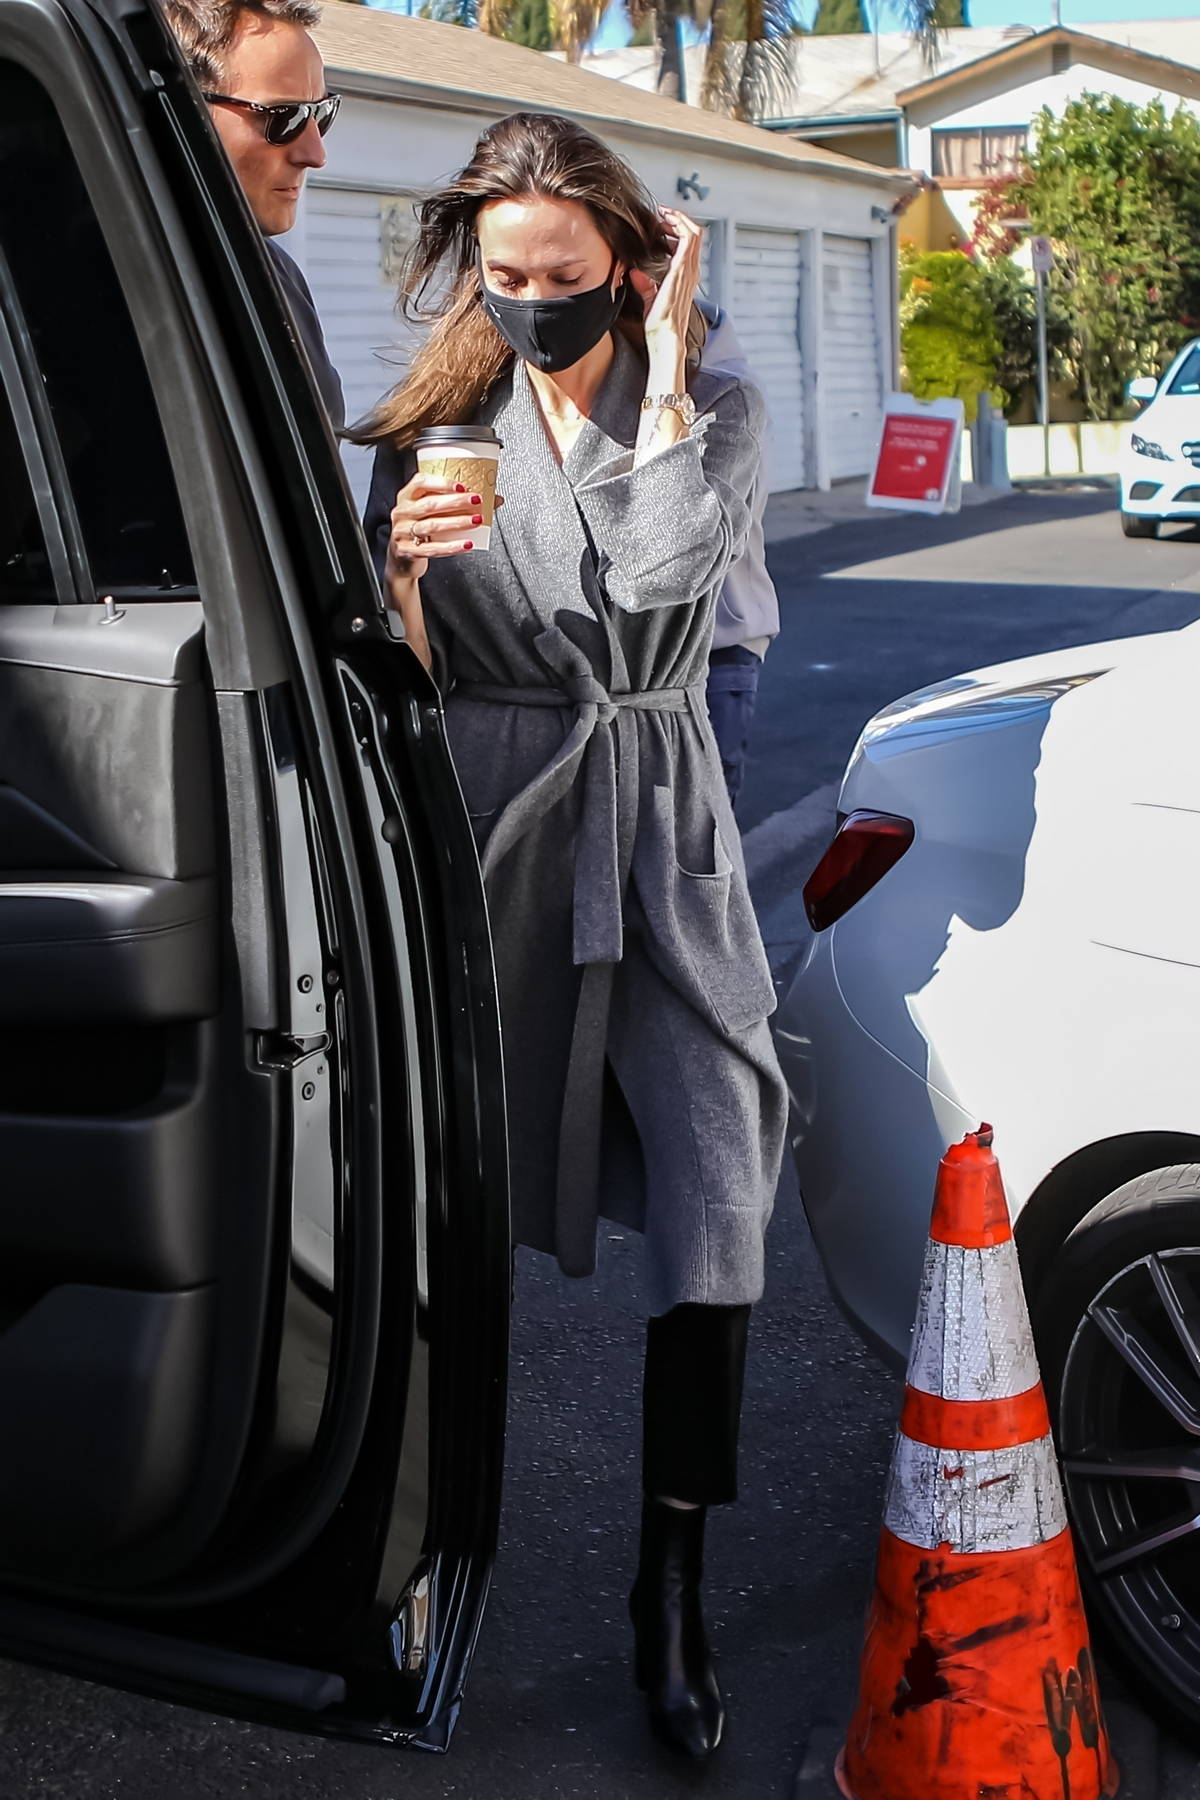 Angelina Jolie hits up Catwalk designer vintage clothing store in the Fairfax district, Los Angeles